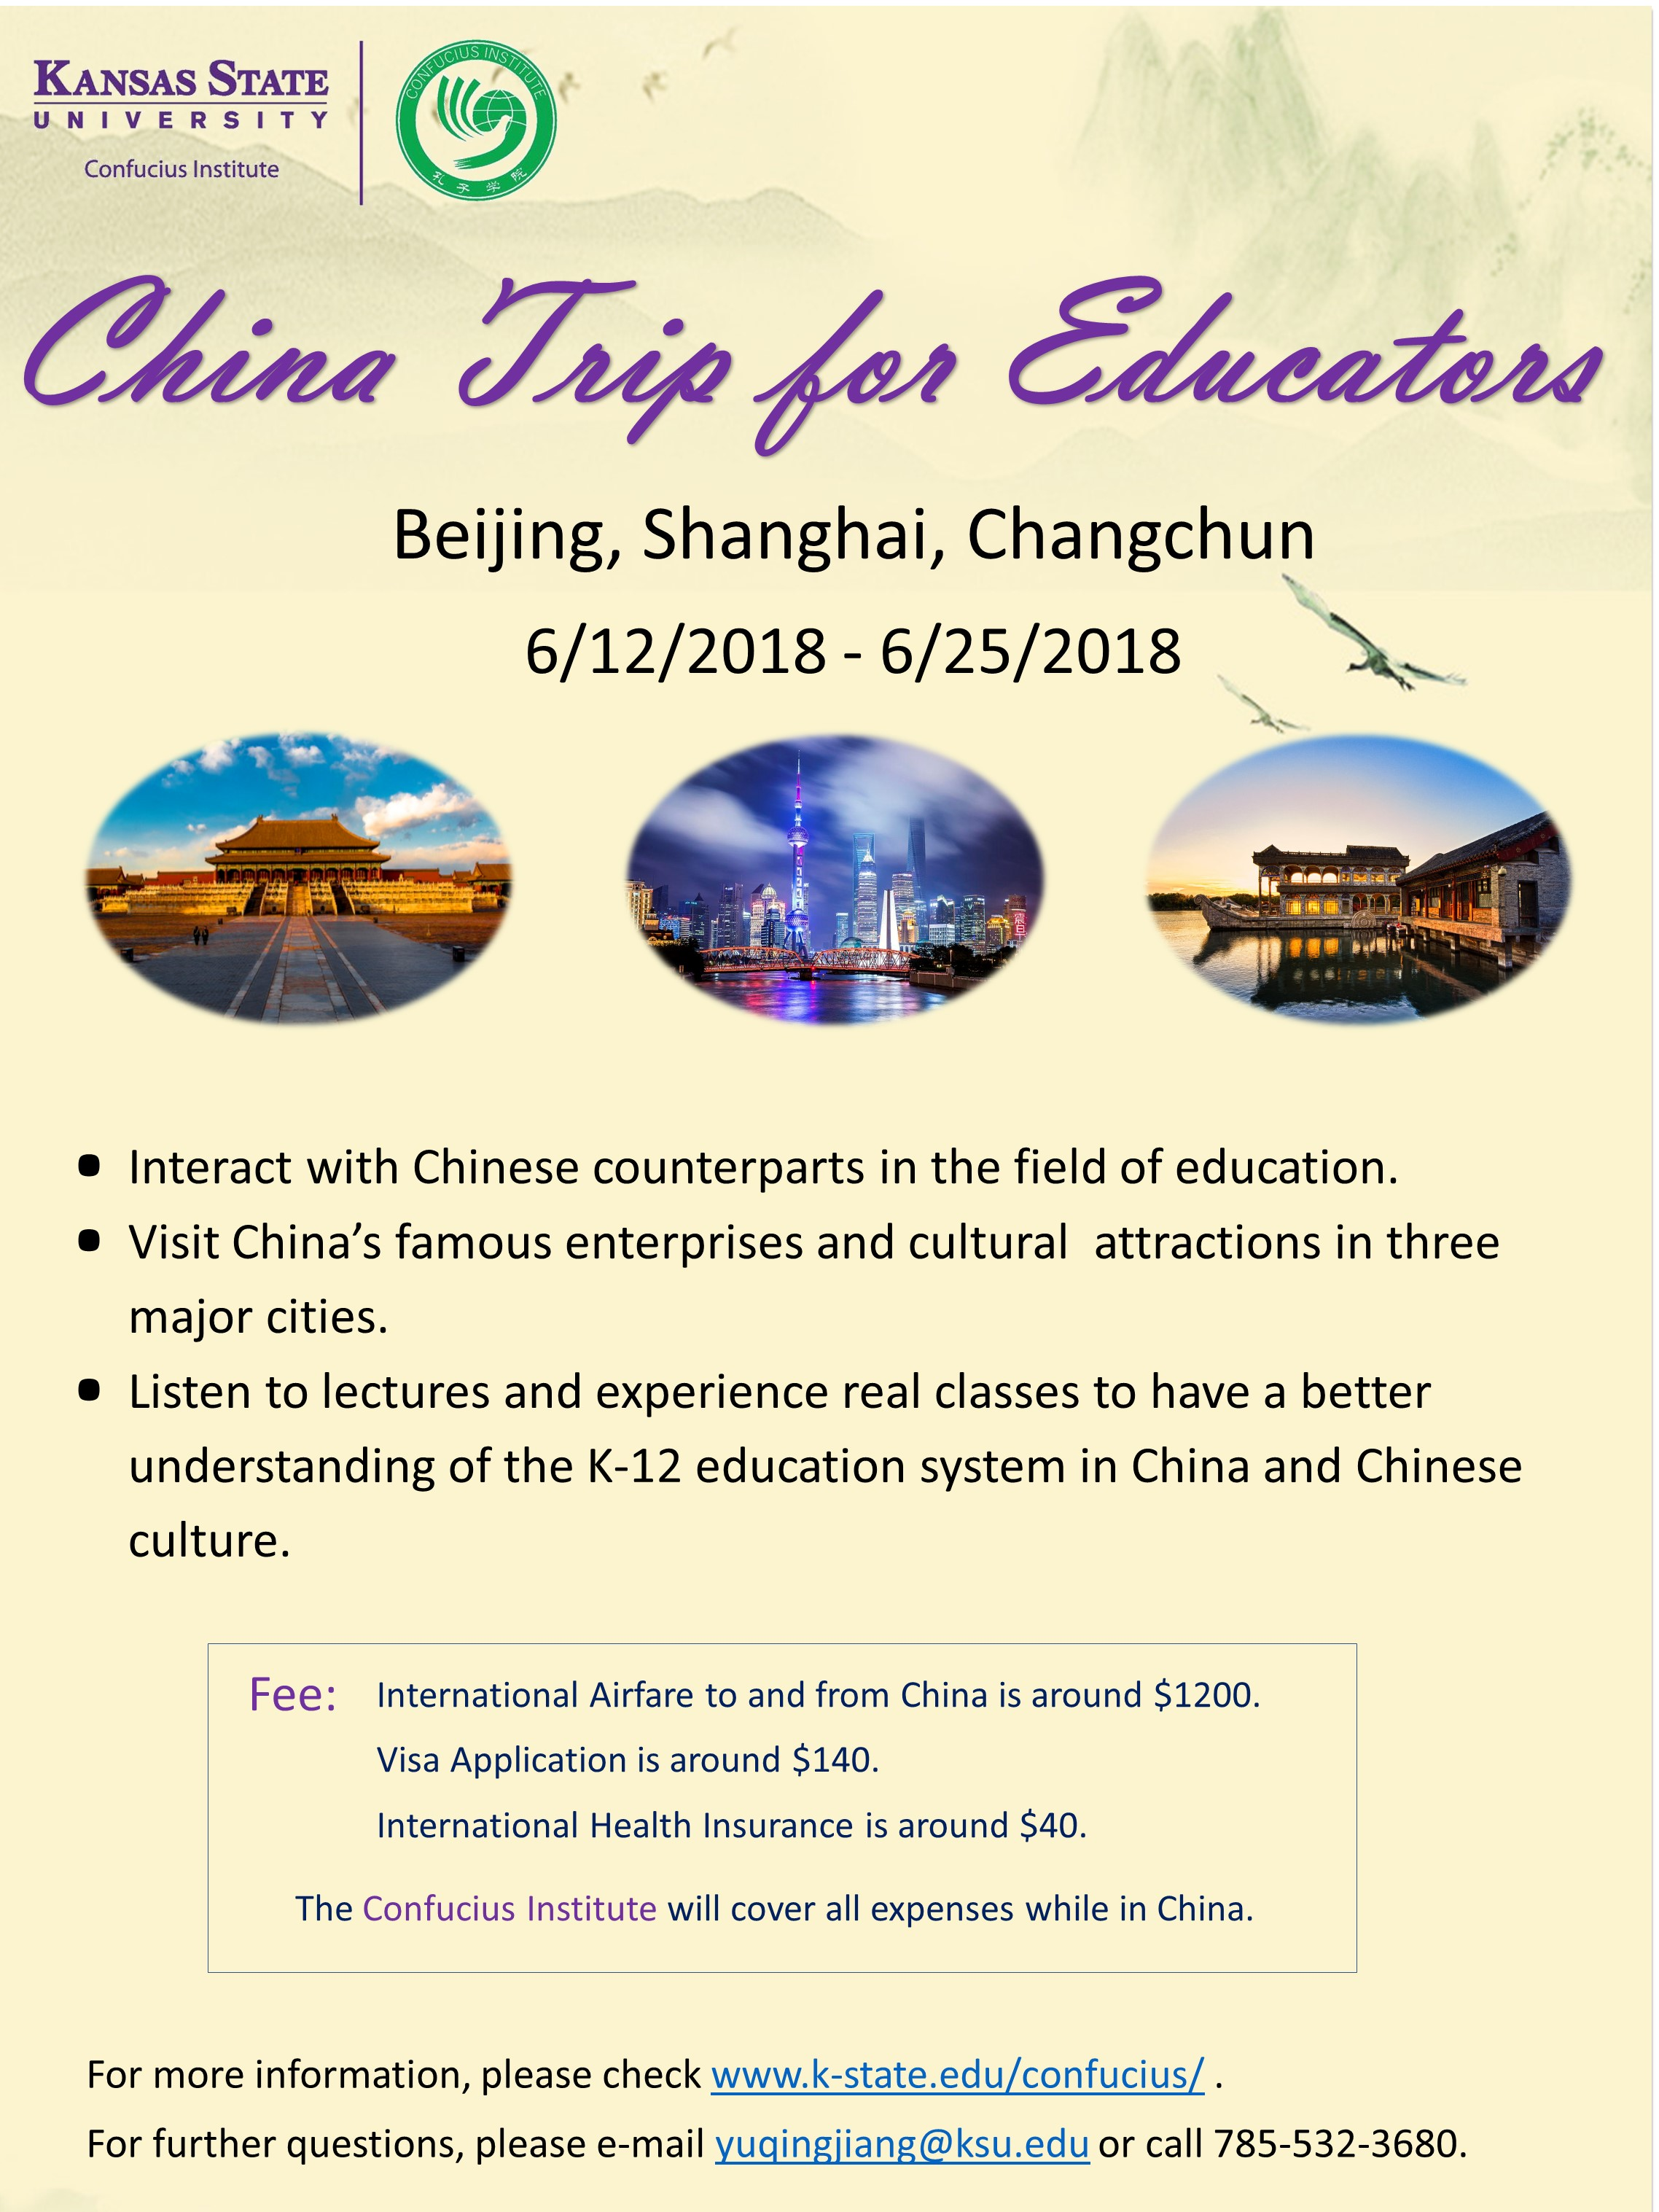 Confucius Institute Kansas State University Beijing Special Deal 4 Days Dept 11 Aug 18 Visit Three Cities In China Listen To Lectures Relating Education Airfare